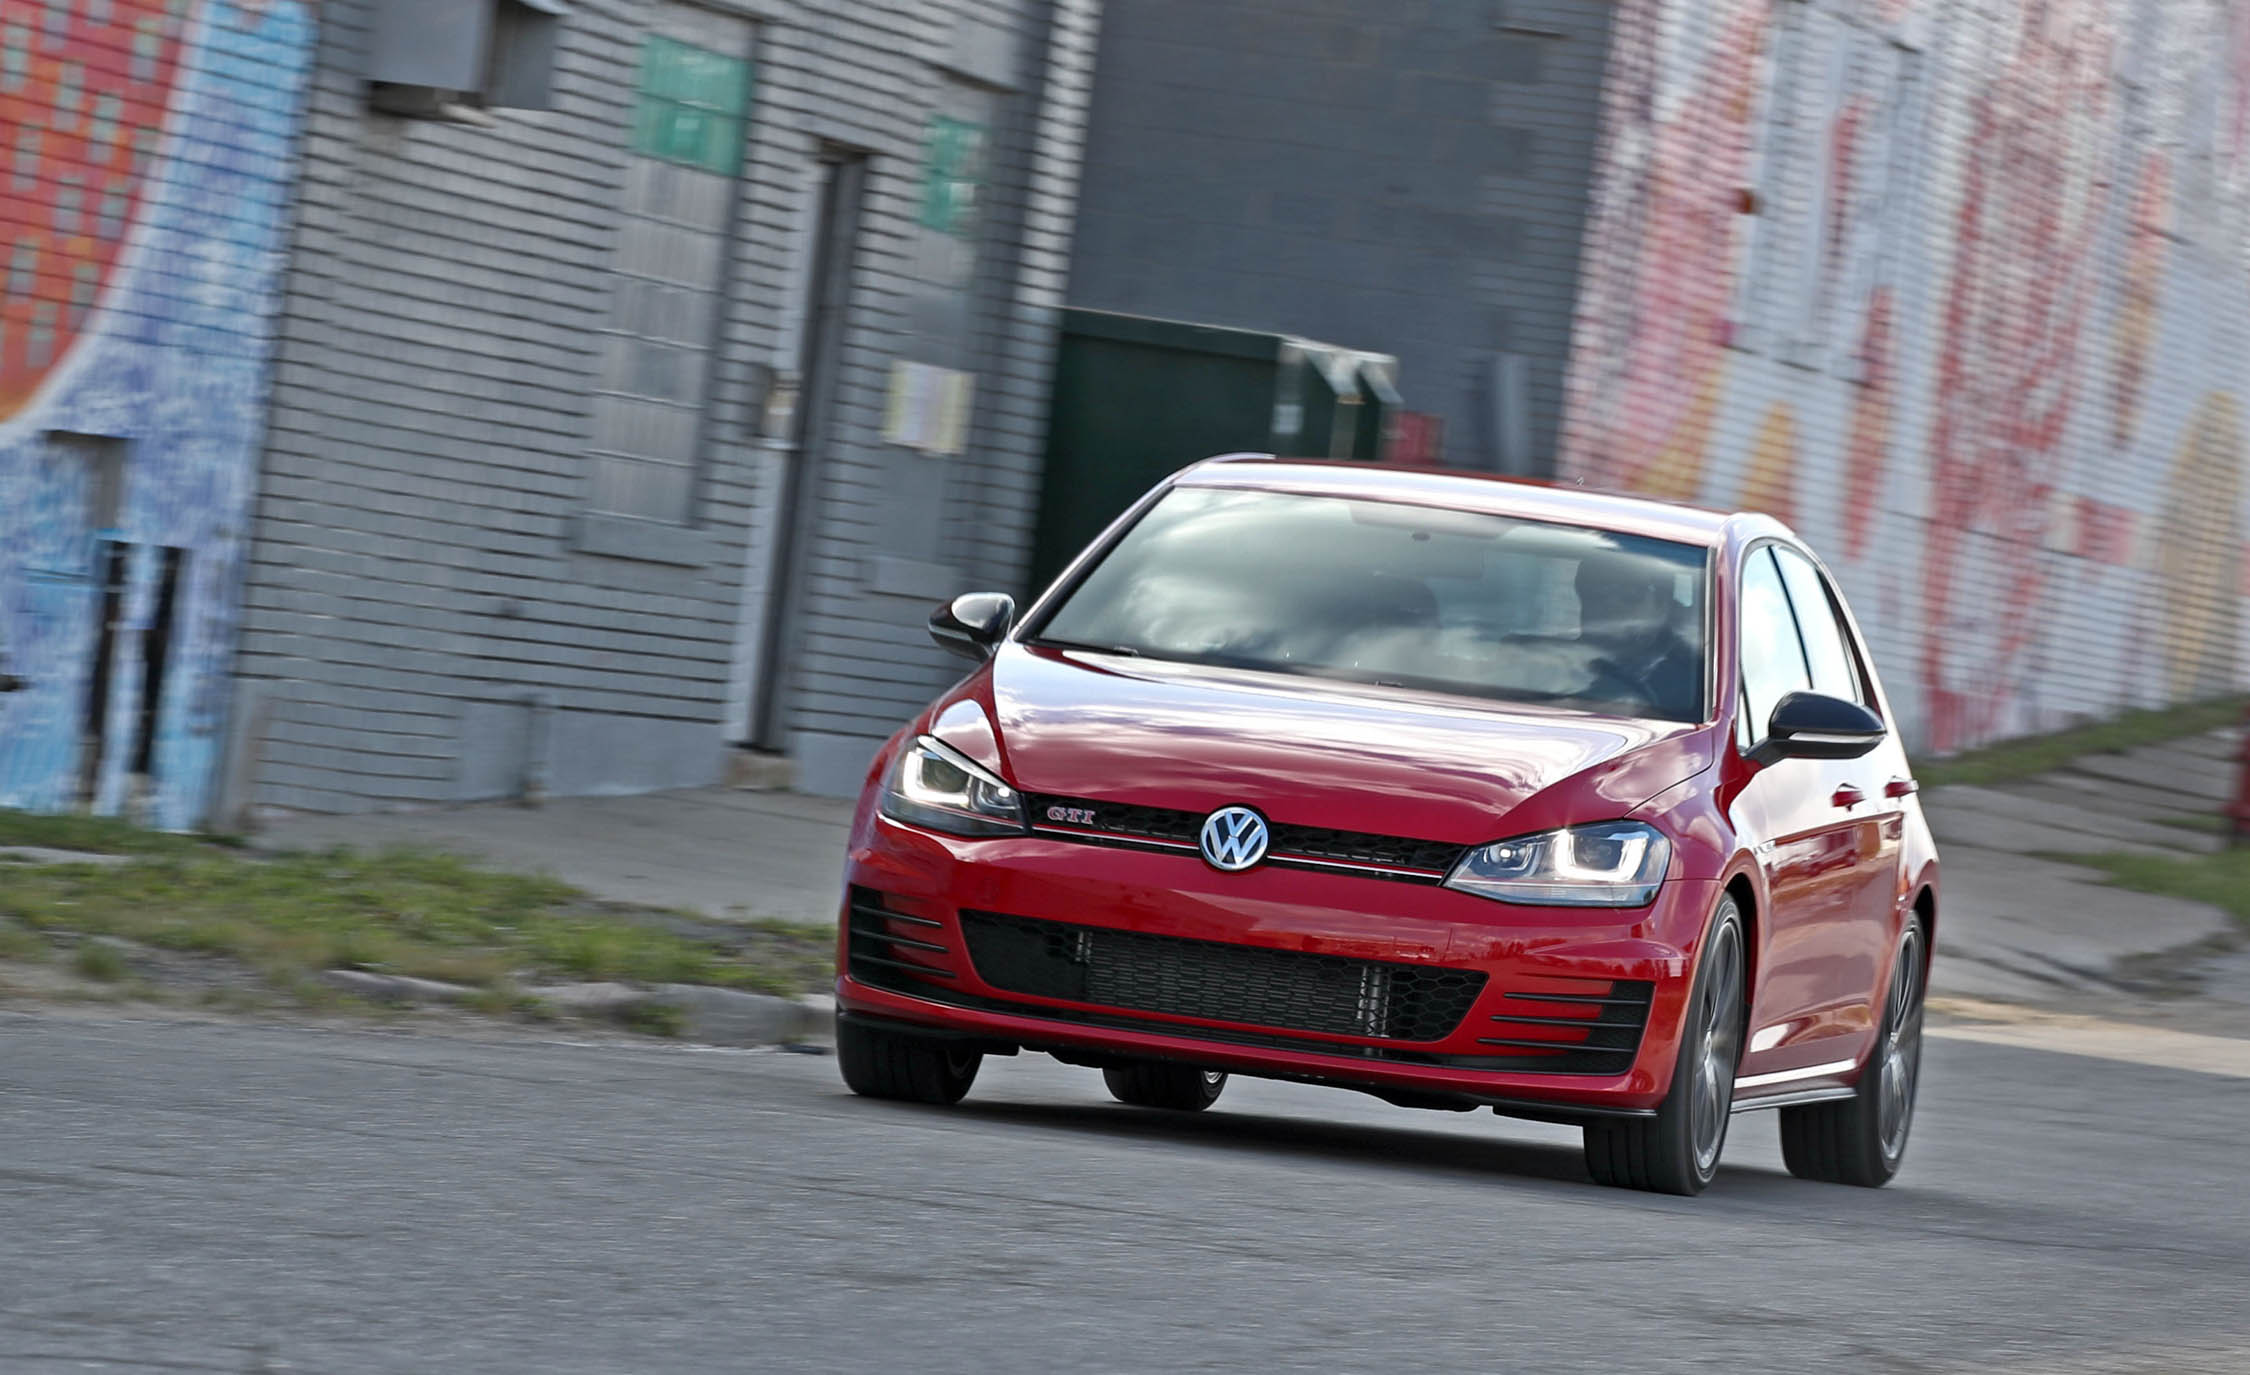 2017 Volkswagen Golf GTI Tested: Simply the Best